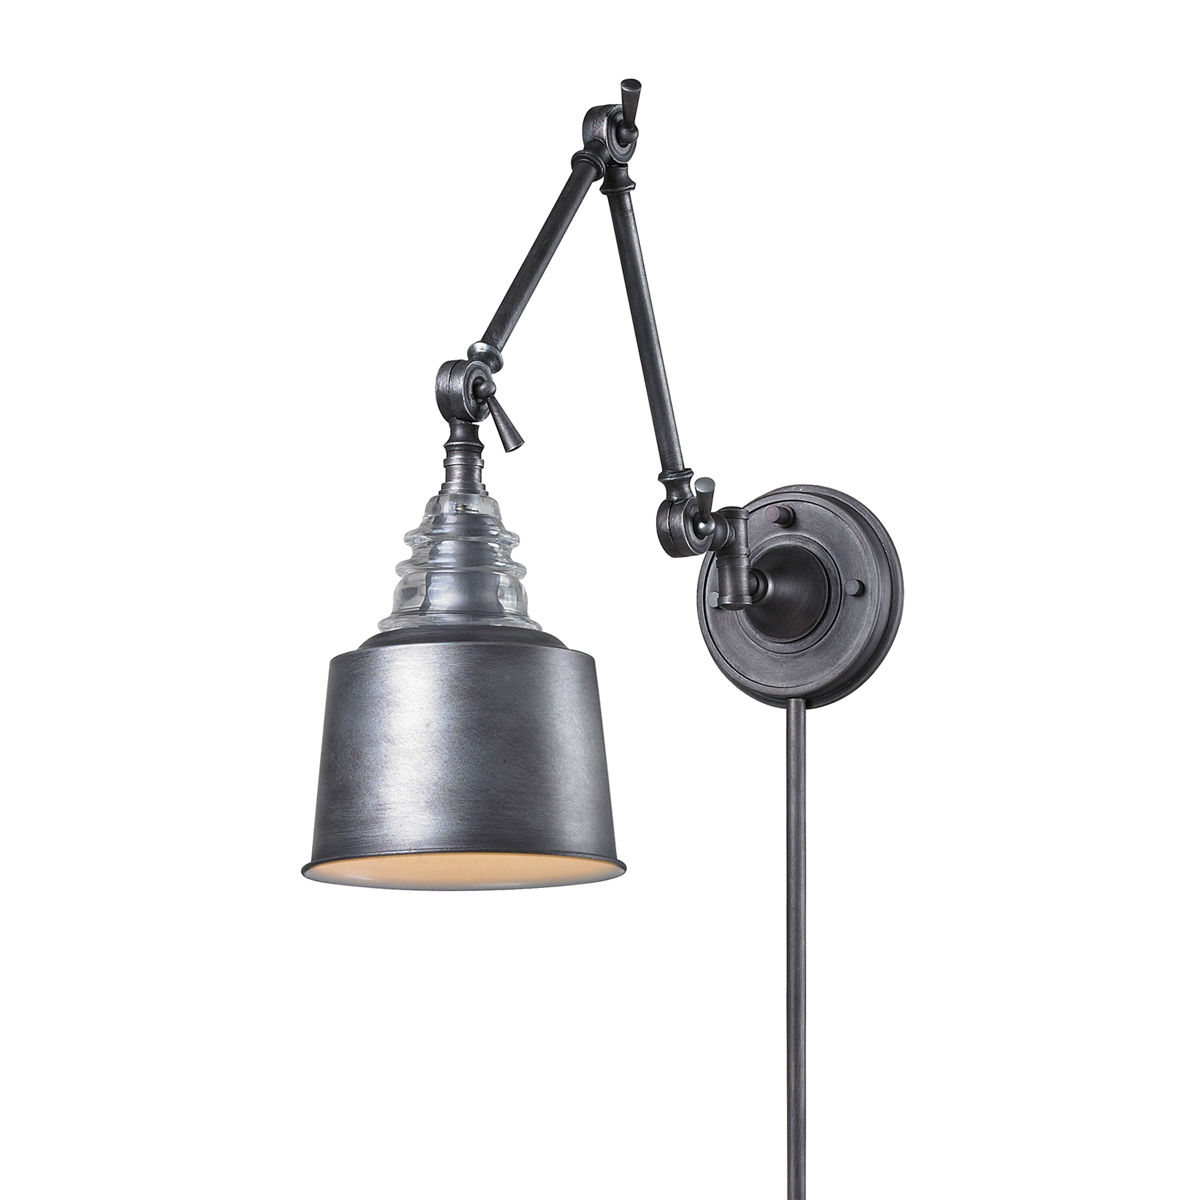 99 swing arm plug in wall lamp